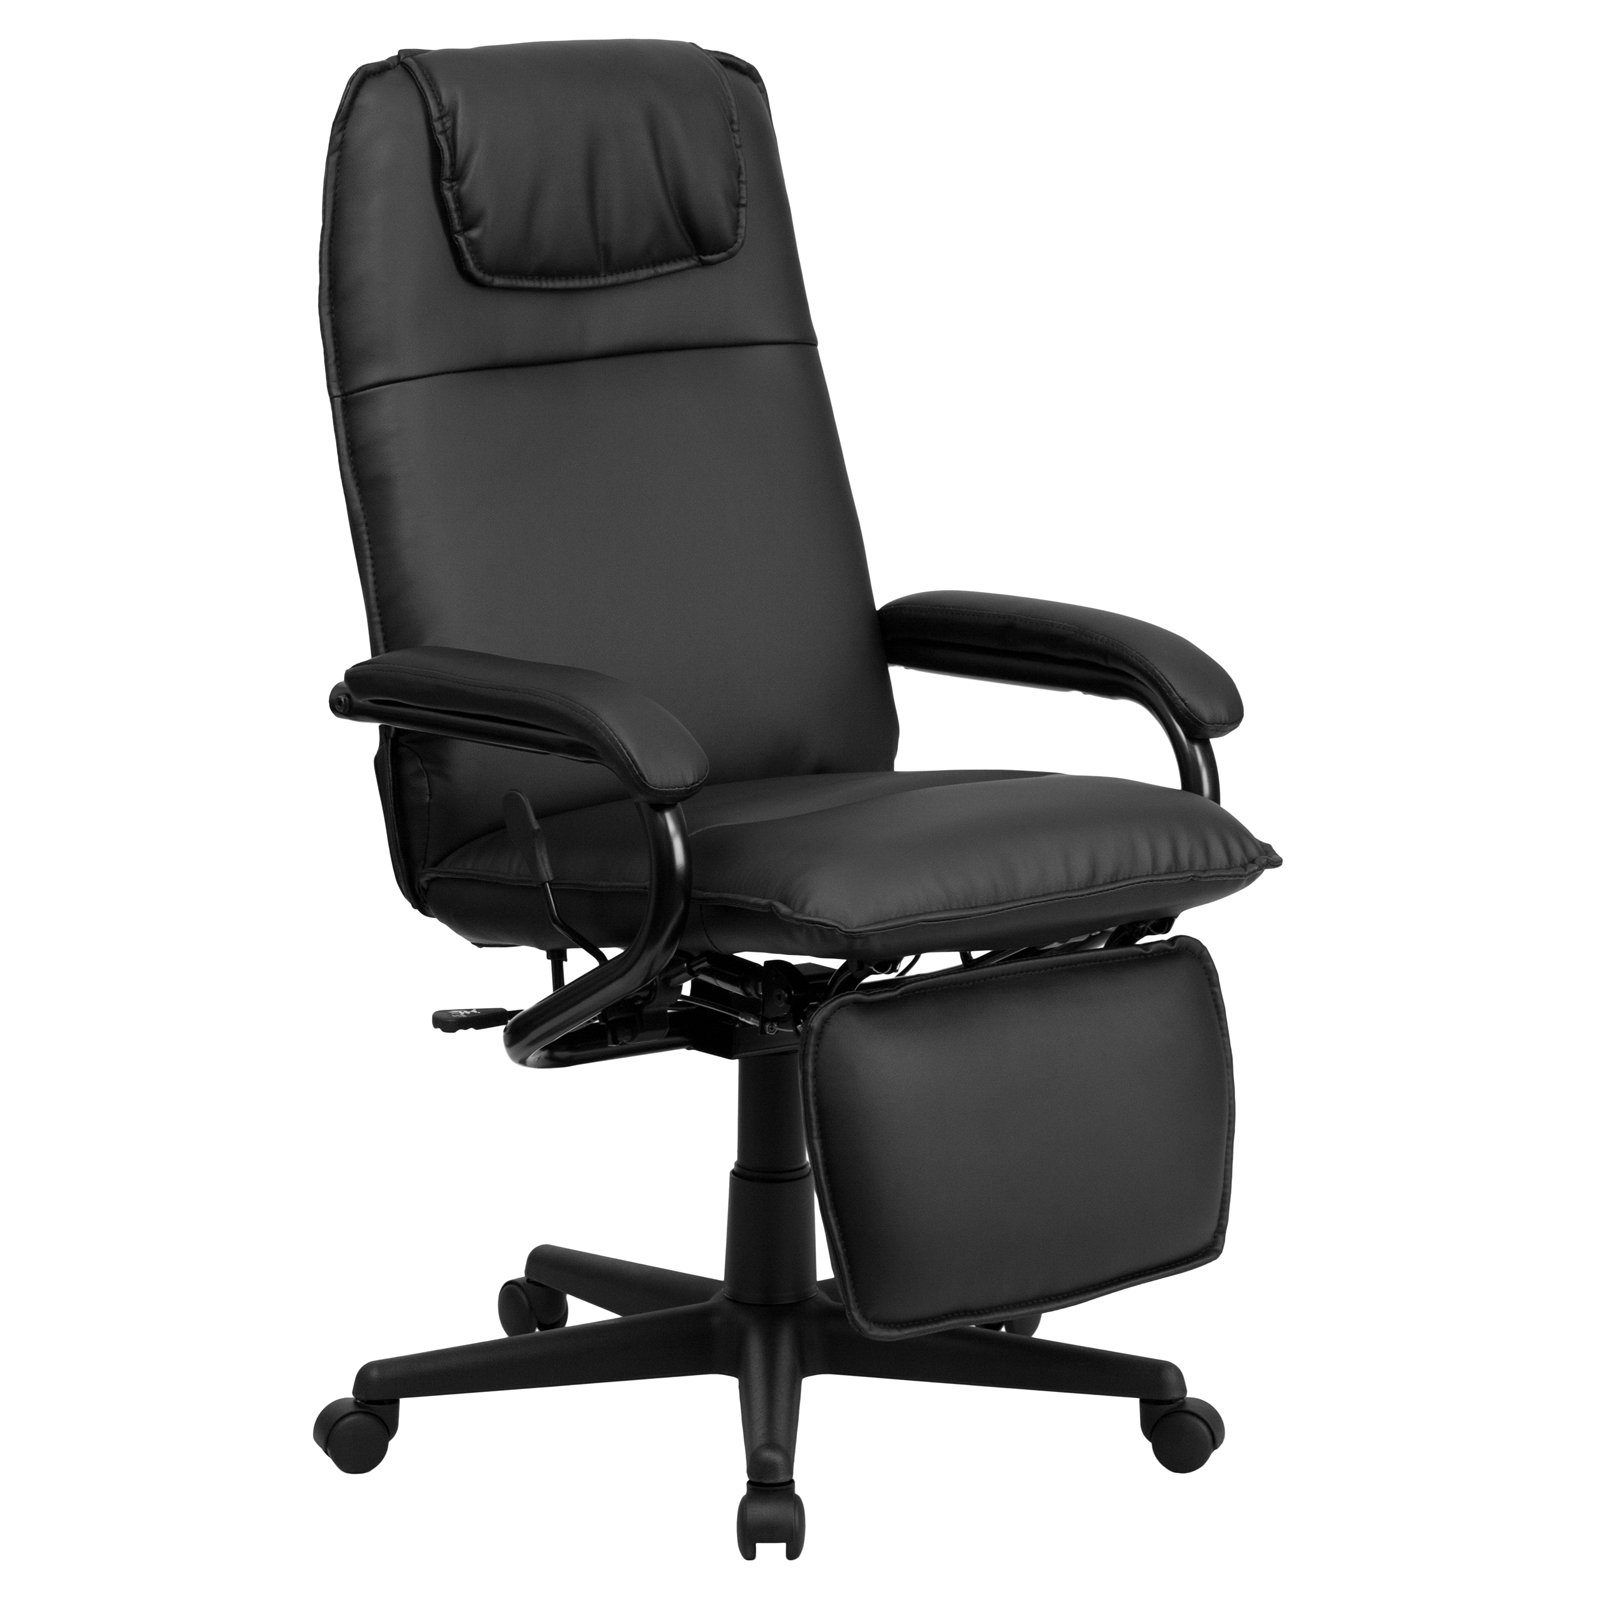 desk chair at walmart wholesale covers flash furniture high back leather executive reclining office com